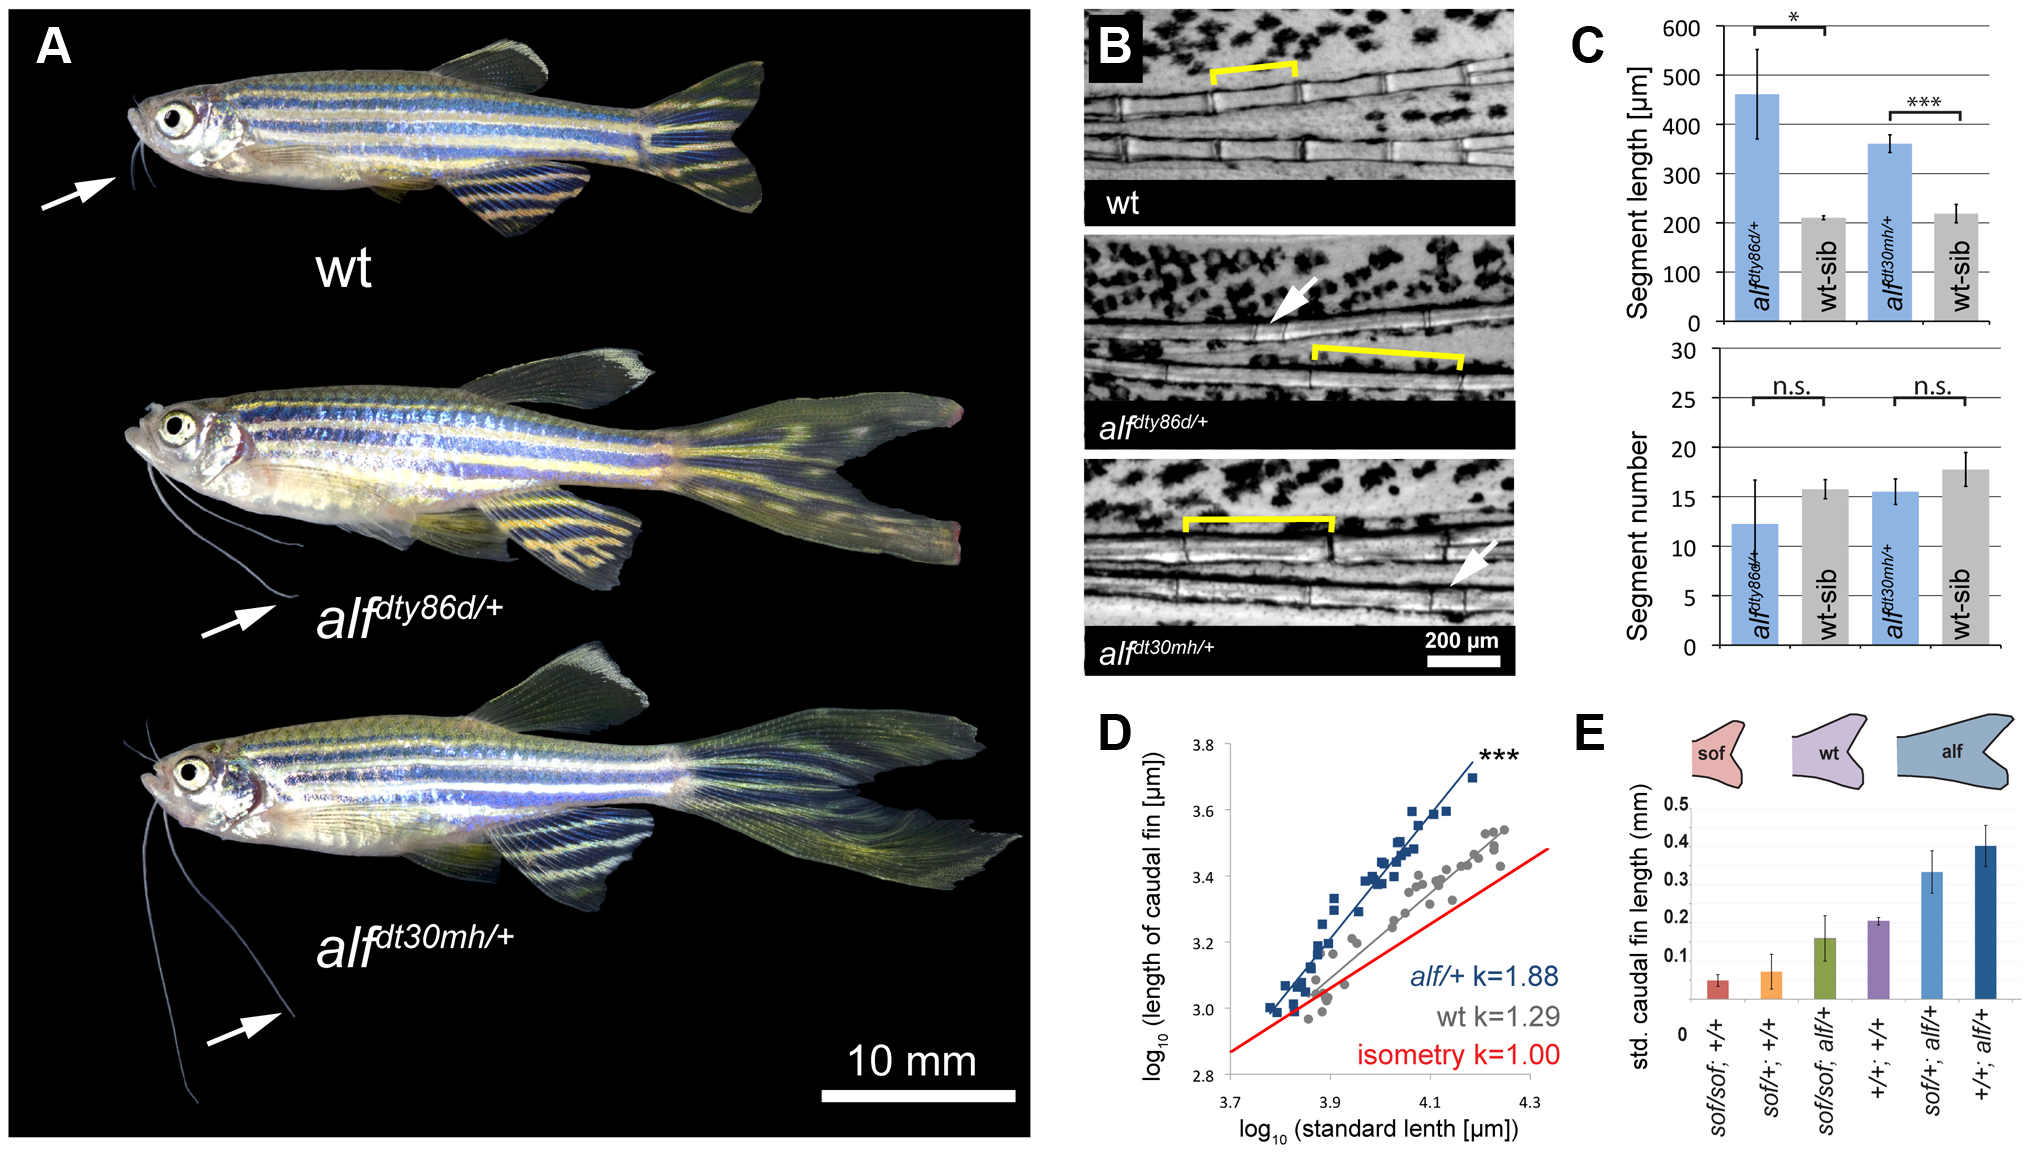 <i>alf</i> mutants lead to an increase in size of the appendages of adult fish.